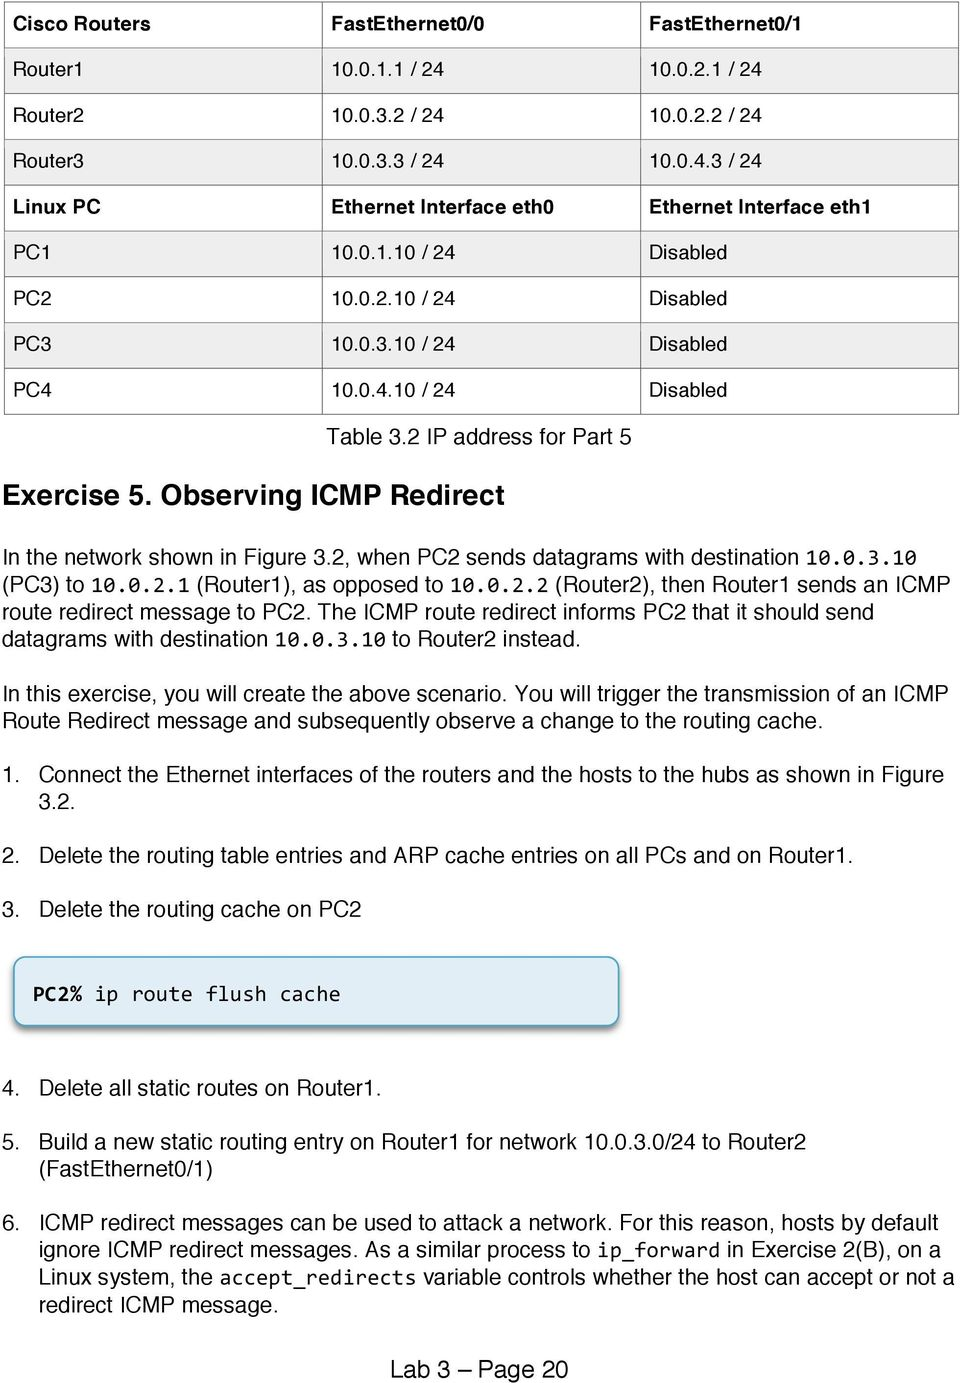 Observing ICMP Redirect In the network shown in Figure 3.2, when PC2 sends datagrams with destination 10.0.3.10 (PC3) to 10.0.2.1 (Router1), as opposed to 10.0.2.2 (Router2), then Router1 sends an ICMP route redirect message to PC2.